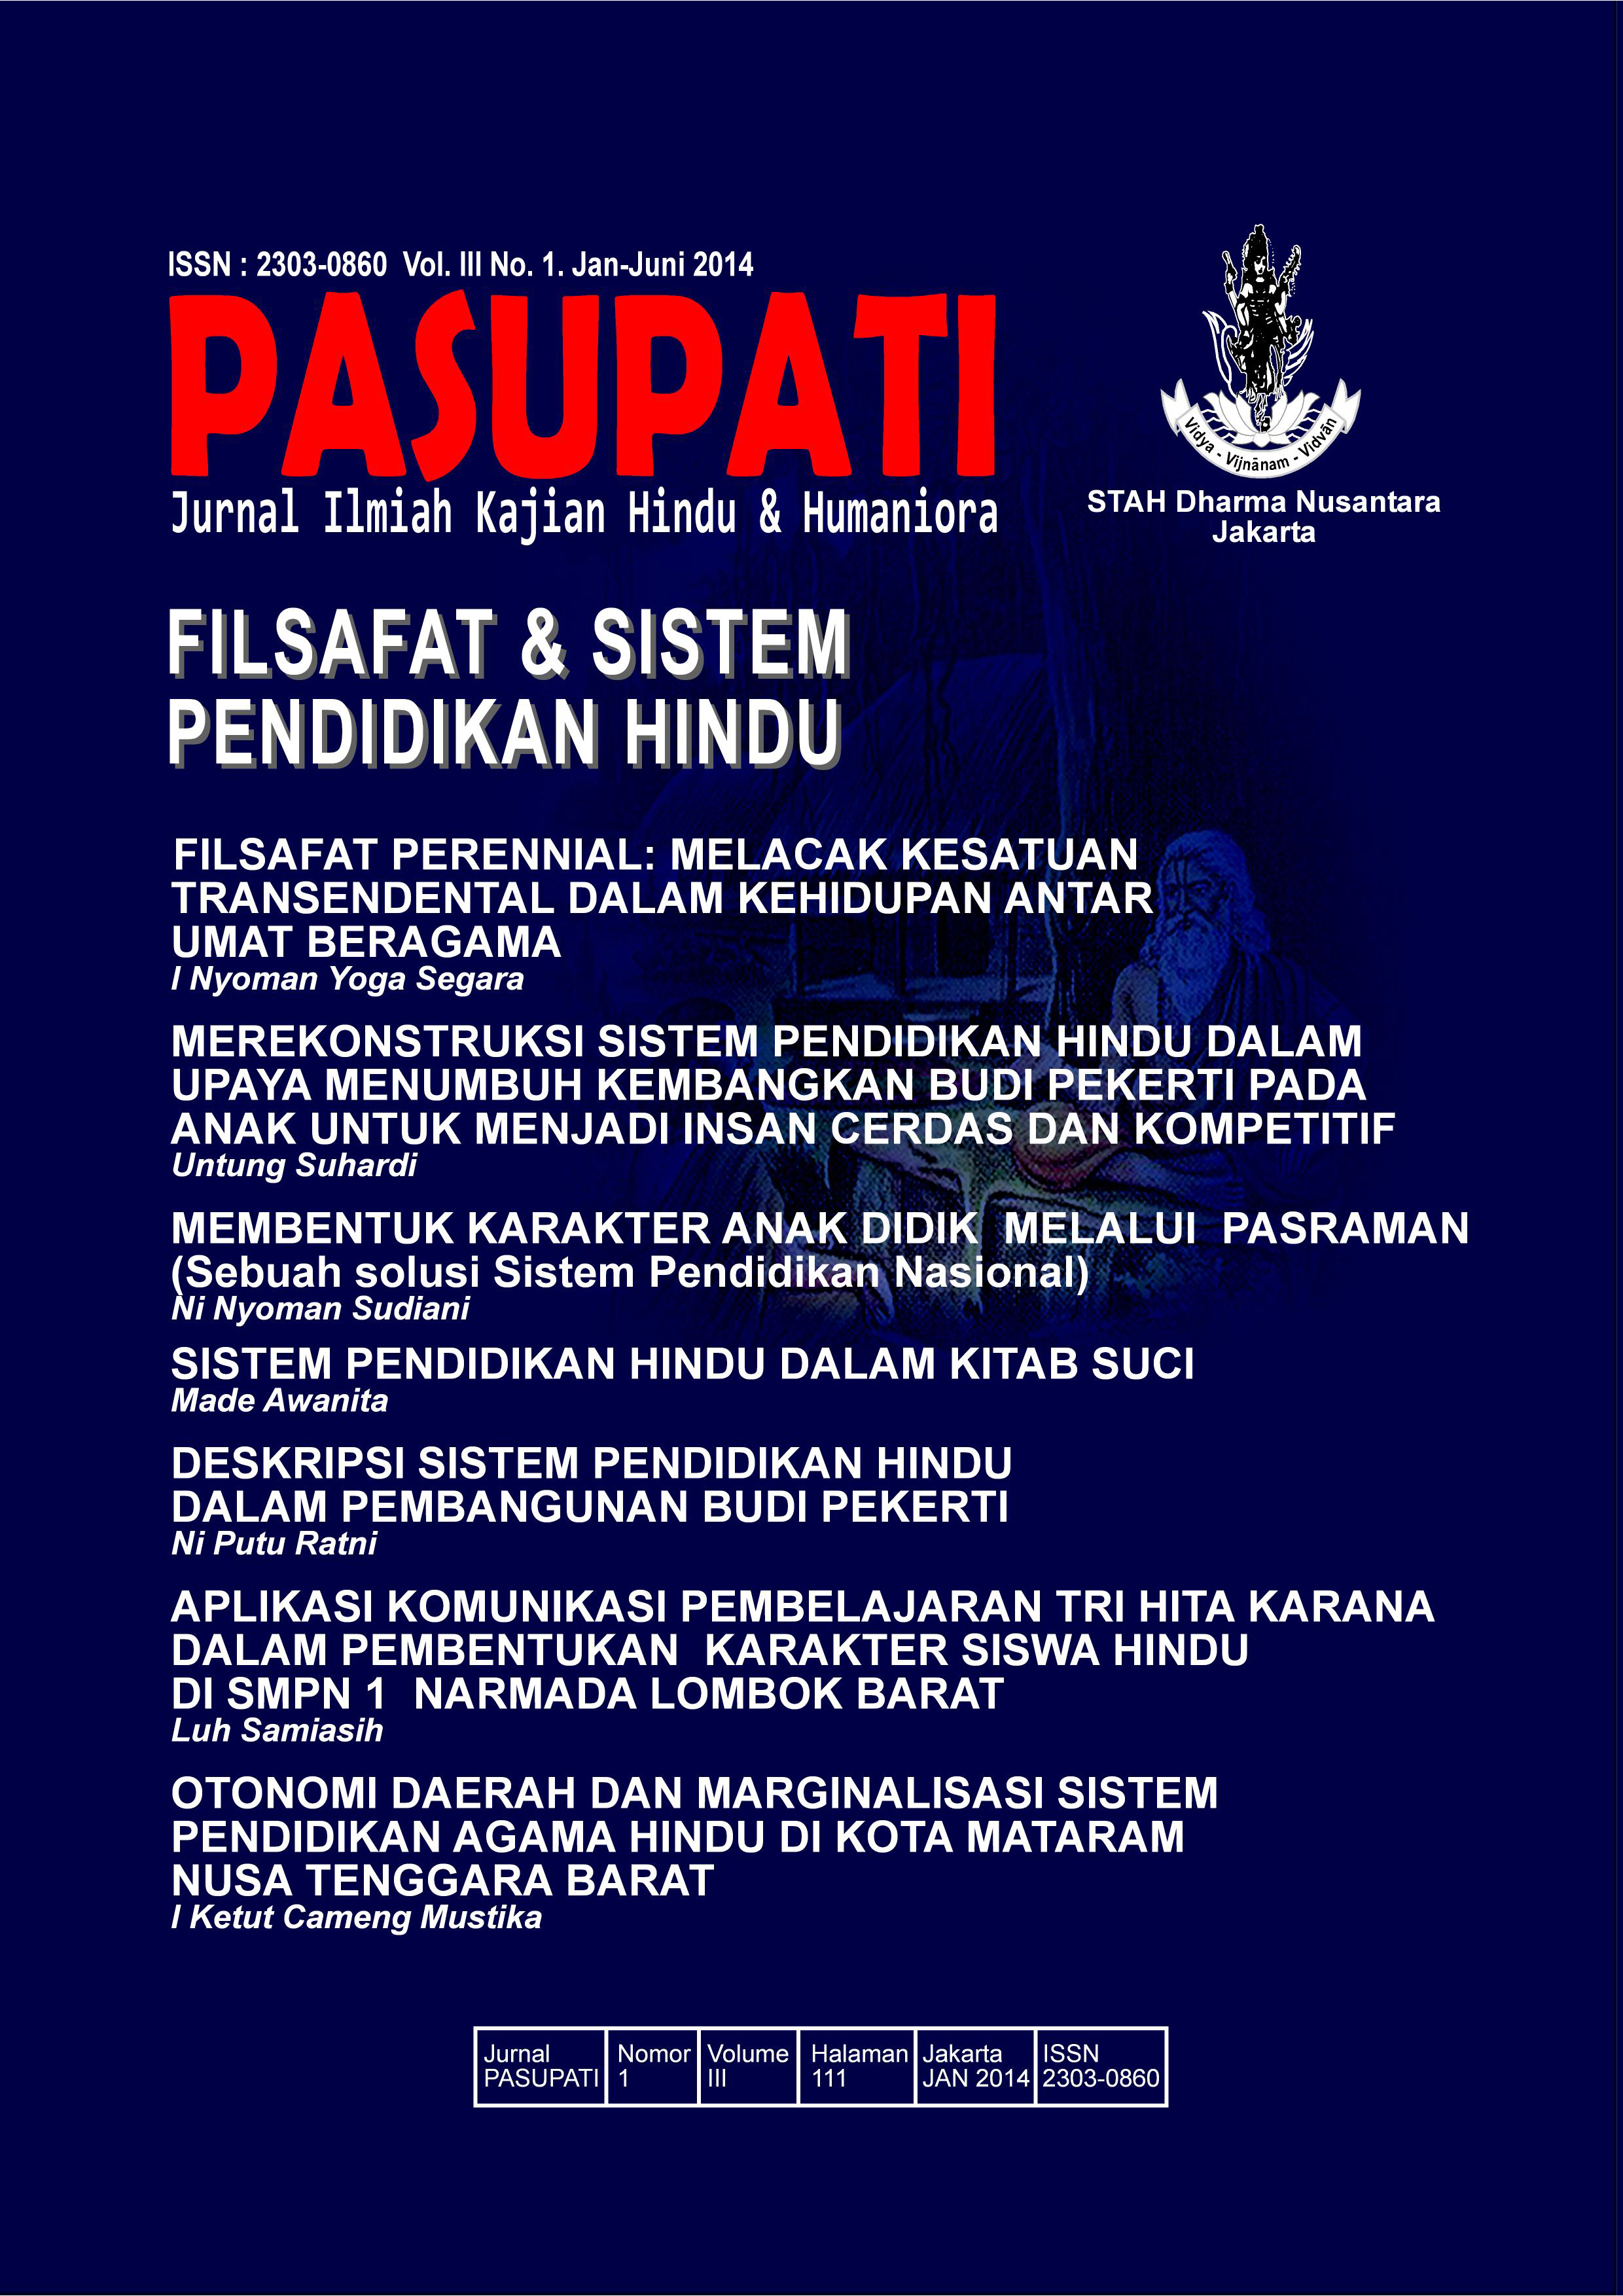 Jurnal Pasupati Vol 3 No. 1